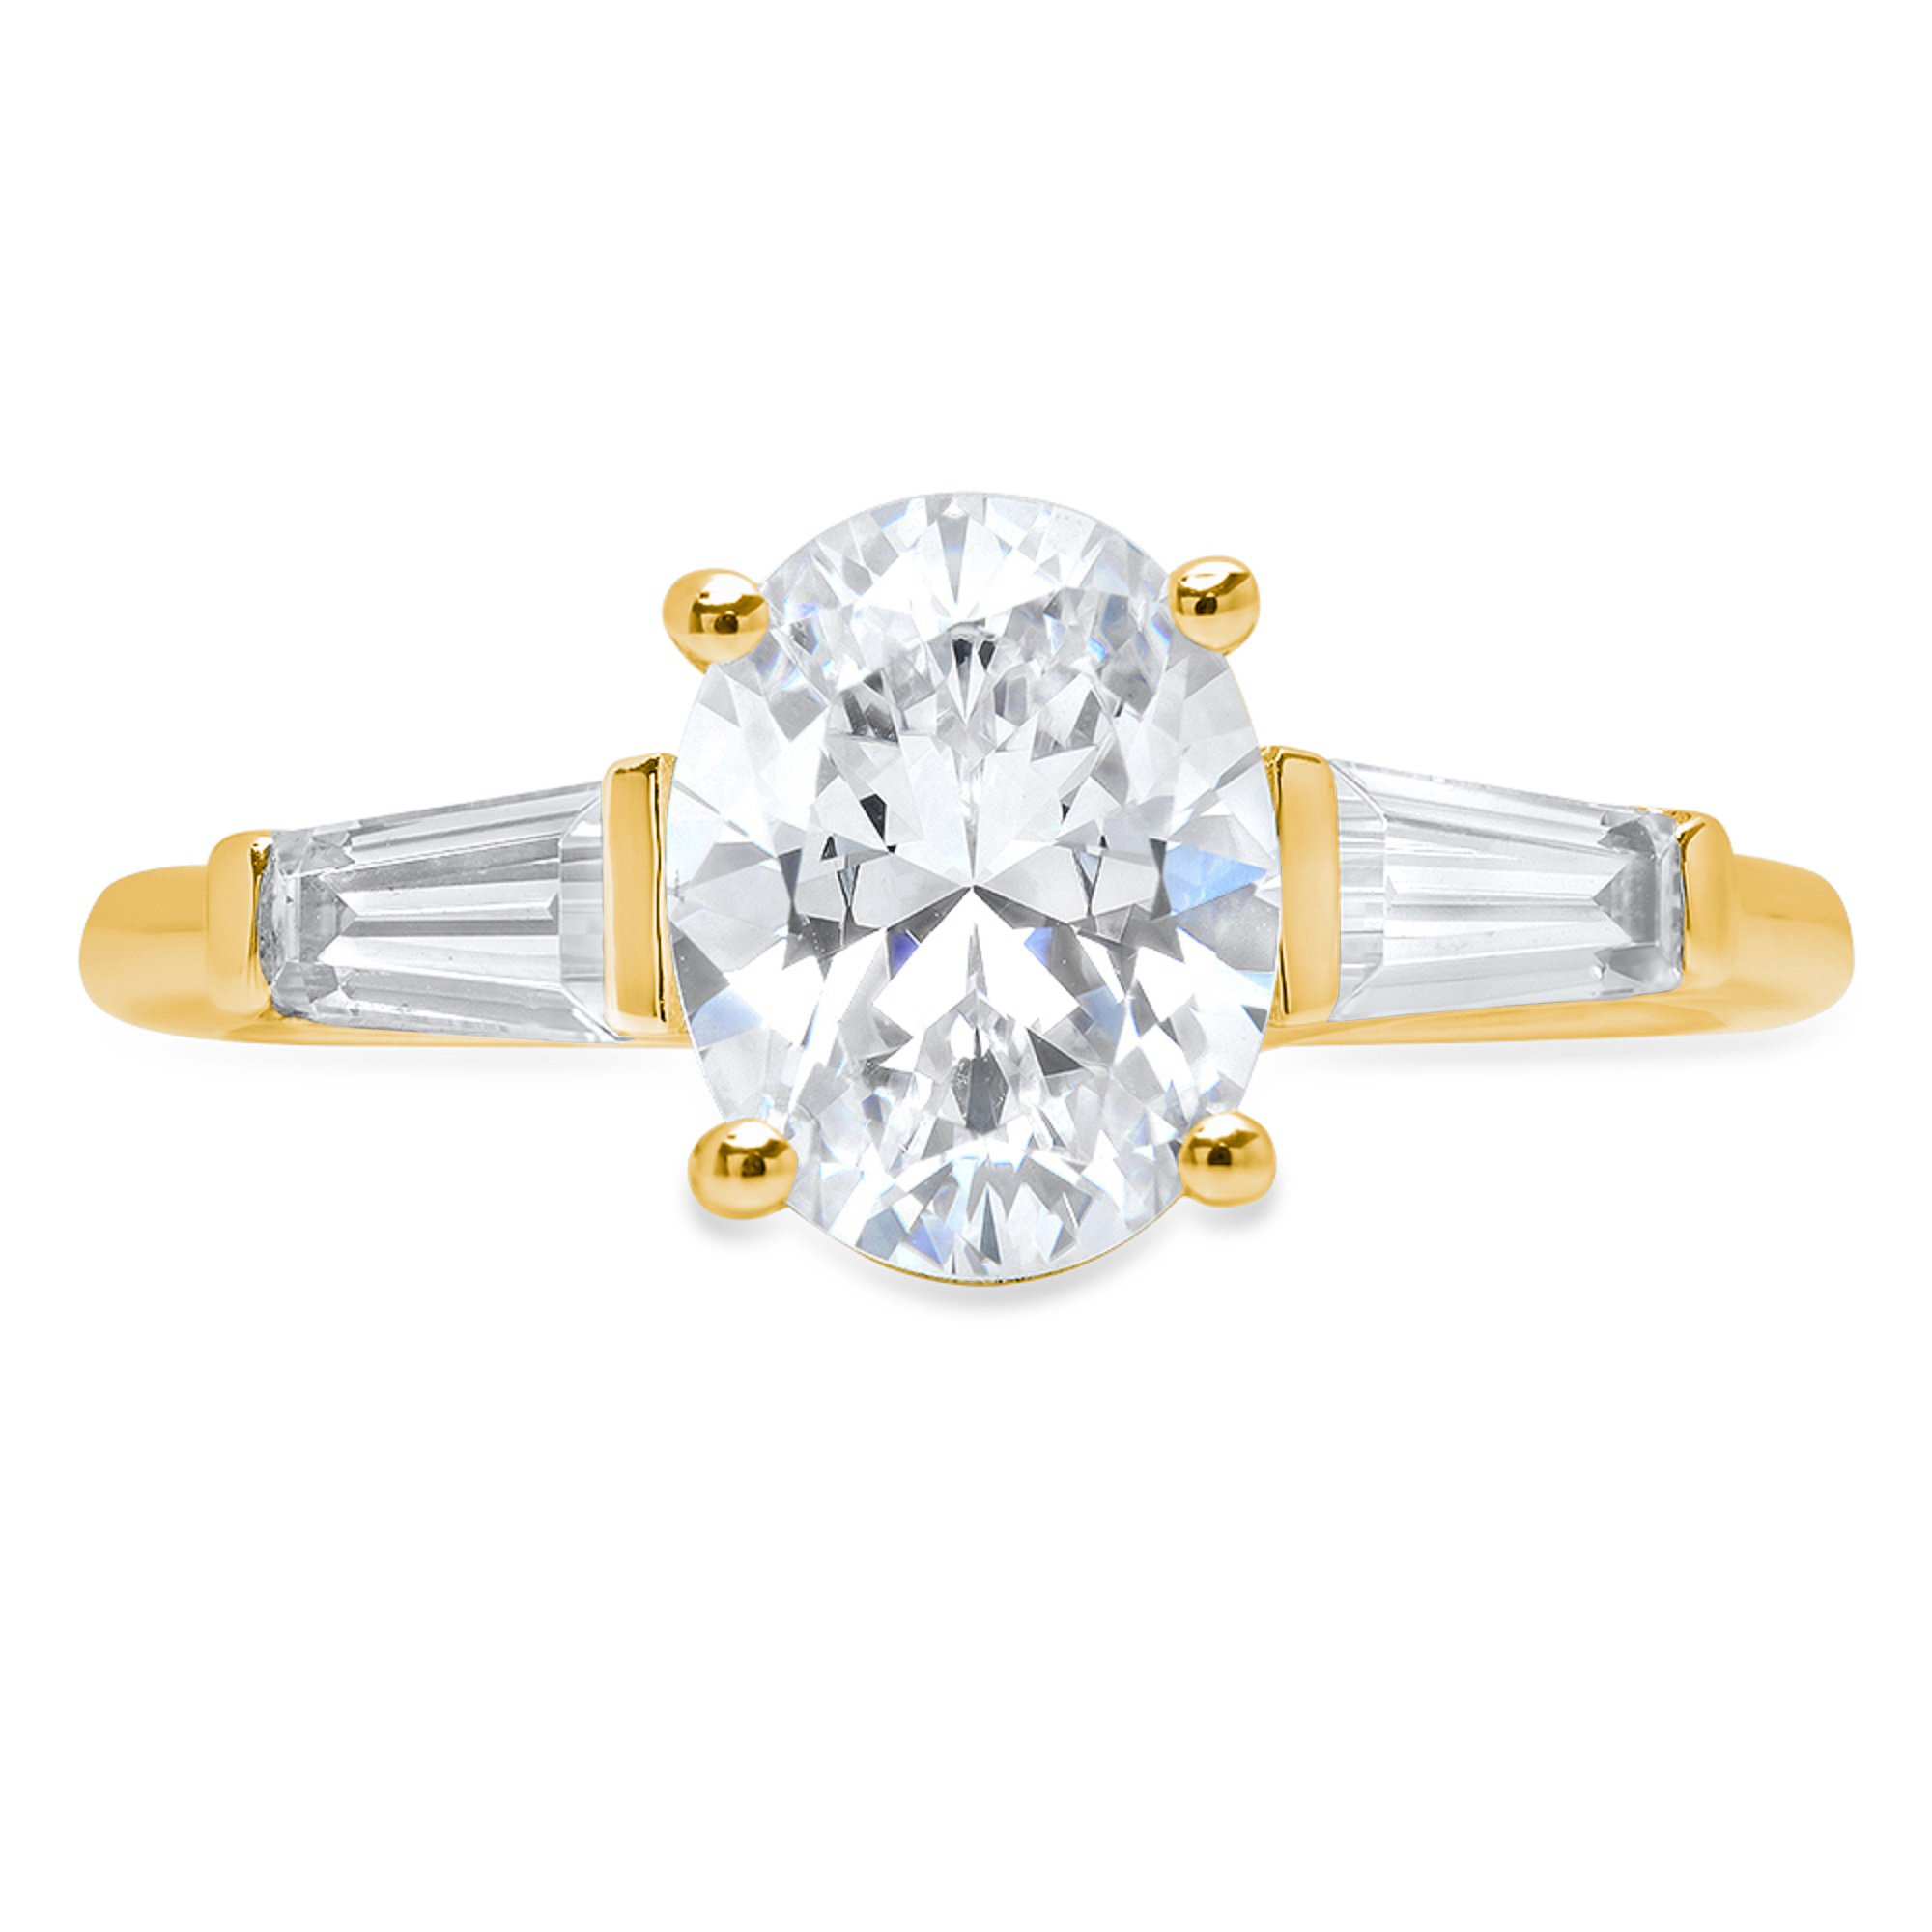 1.8ct Oval Baguette Brilliant Cut 3-Stone Statement Classic Designer Solitaire Anniversary Engagement Wedding Bridal Promise Ring Solid 14k Yellow Gold For Women, 5.75, Clara Pucci